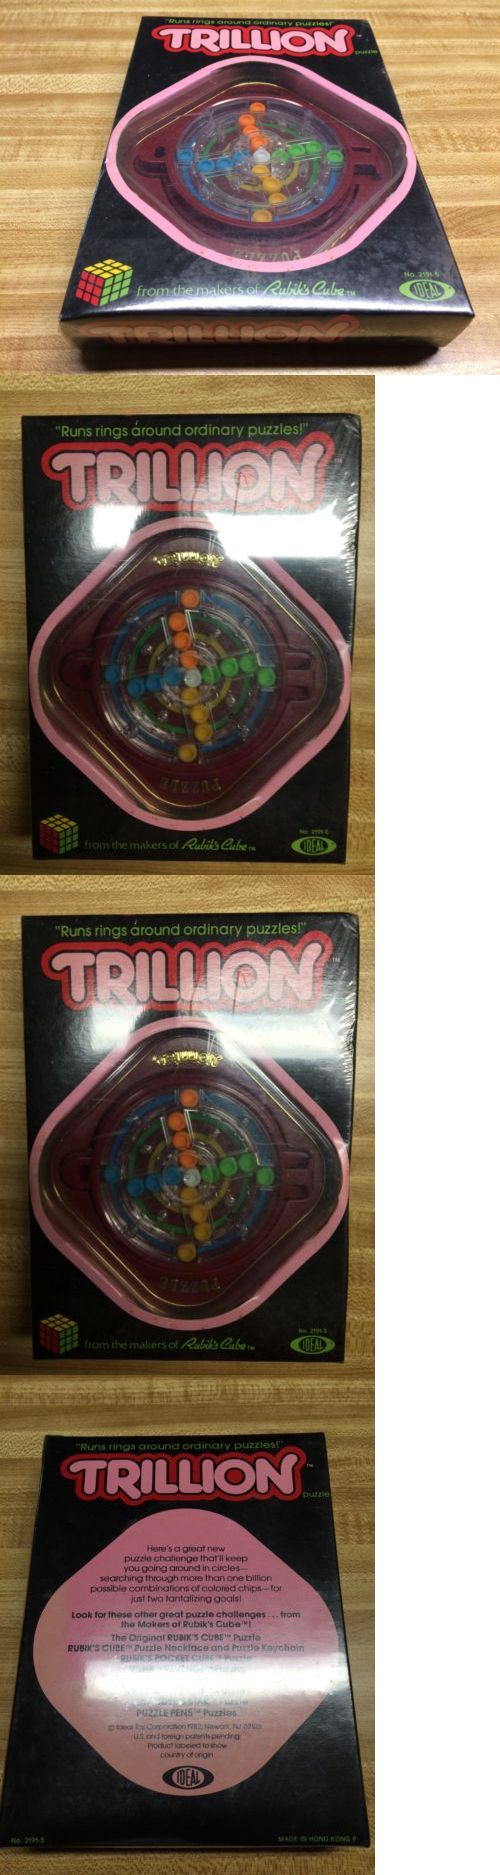 Brain Teasers and Cube Twist 19187: New Sealed Trillion Puzzle Game 1982 From The Makers Of Rubik S Cube -> BUY IT NOW ONLY: $89.95 on eBay!